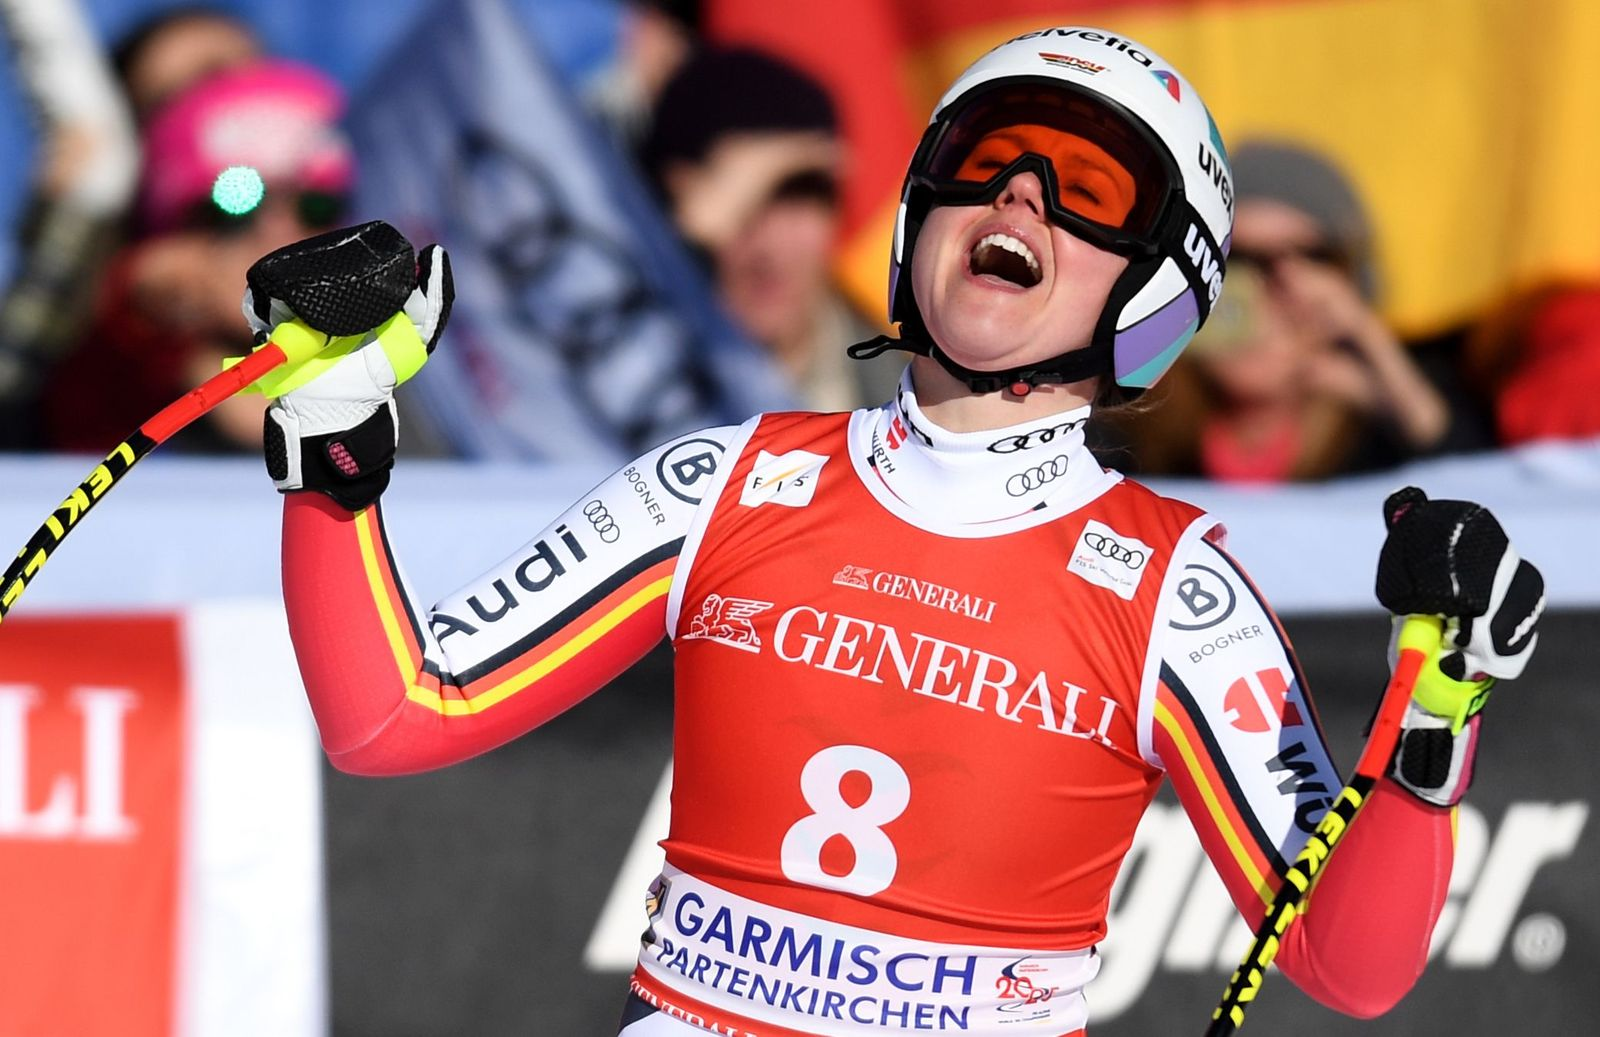 SKI-ALPINE-GER-WCUP-DOWNHILL-WOMEN